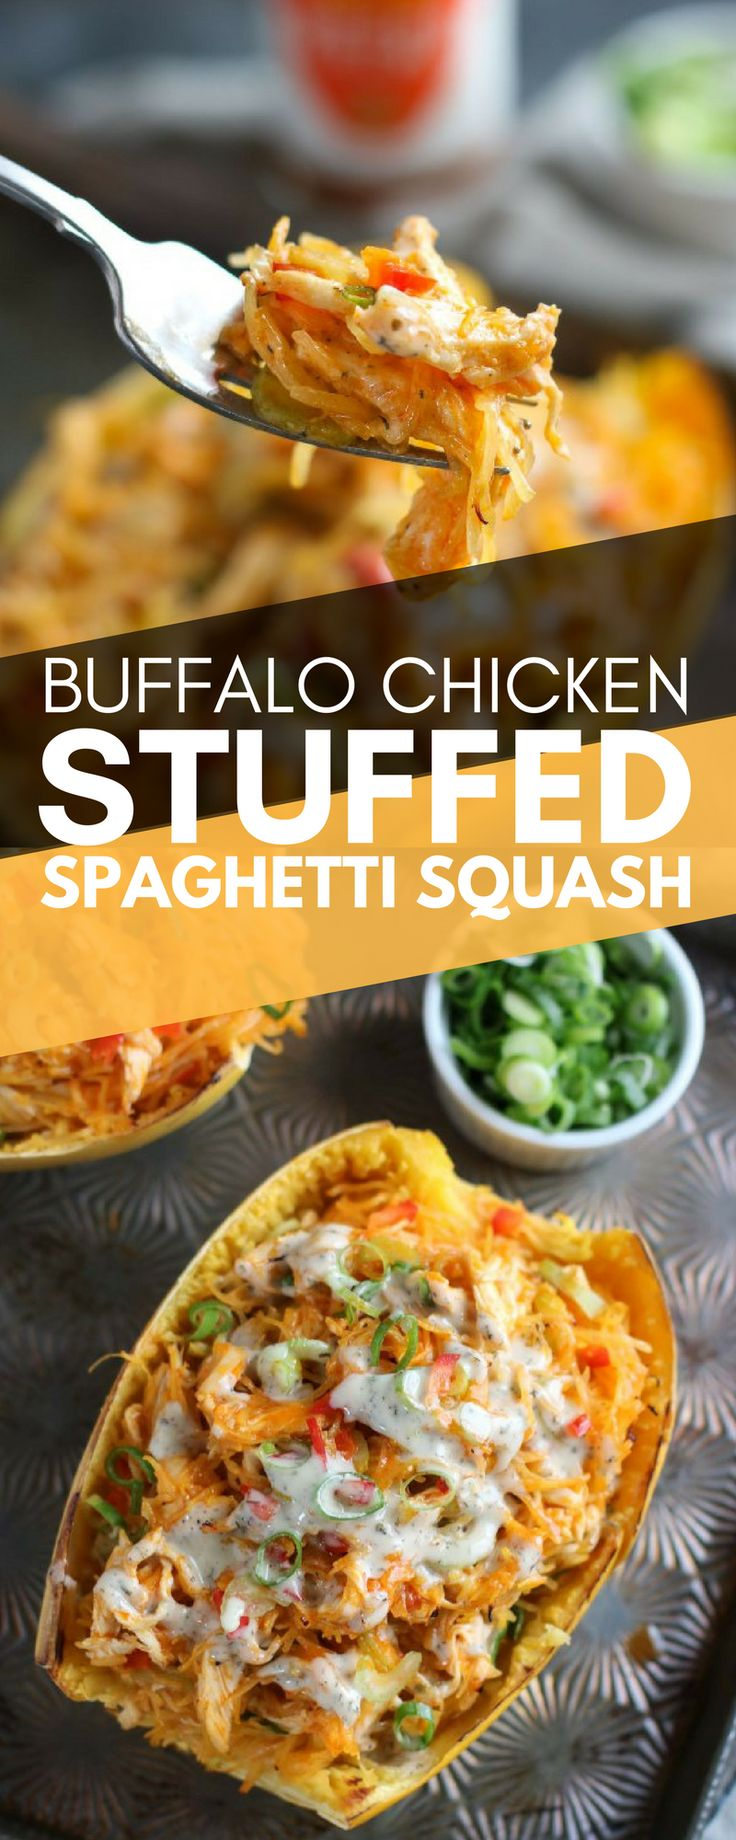 Everyone loves some tasty buffalo chicken, right? What if we told you we had a recipe that was not only tasty, but healthy too? Well, you're in luck! Try this paleo, whole30, grain-free, dairy-free, SUPER delicious recipe for buffalo chicken stuffed spaghetti squash! It takes just 15 minutes to prep and is a delicious entree that everyone will enjoy.